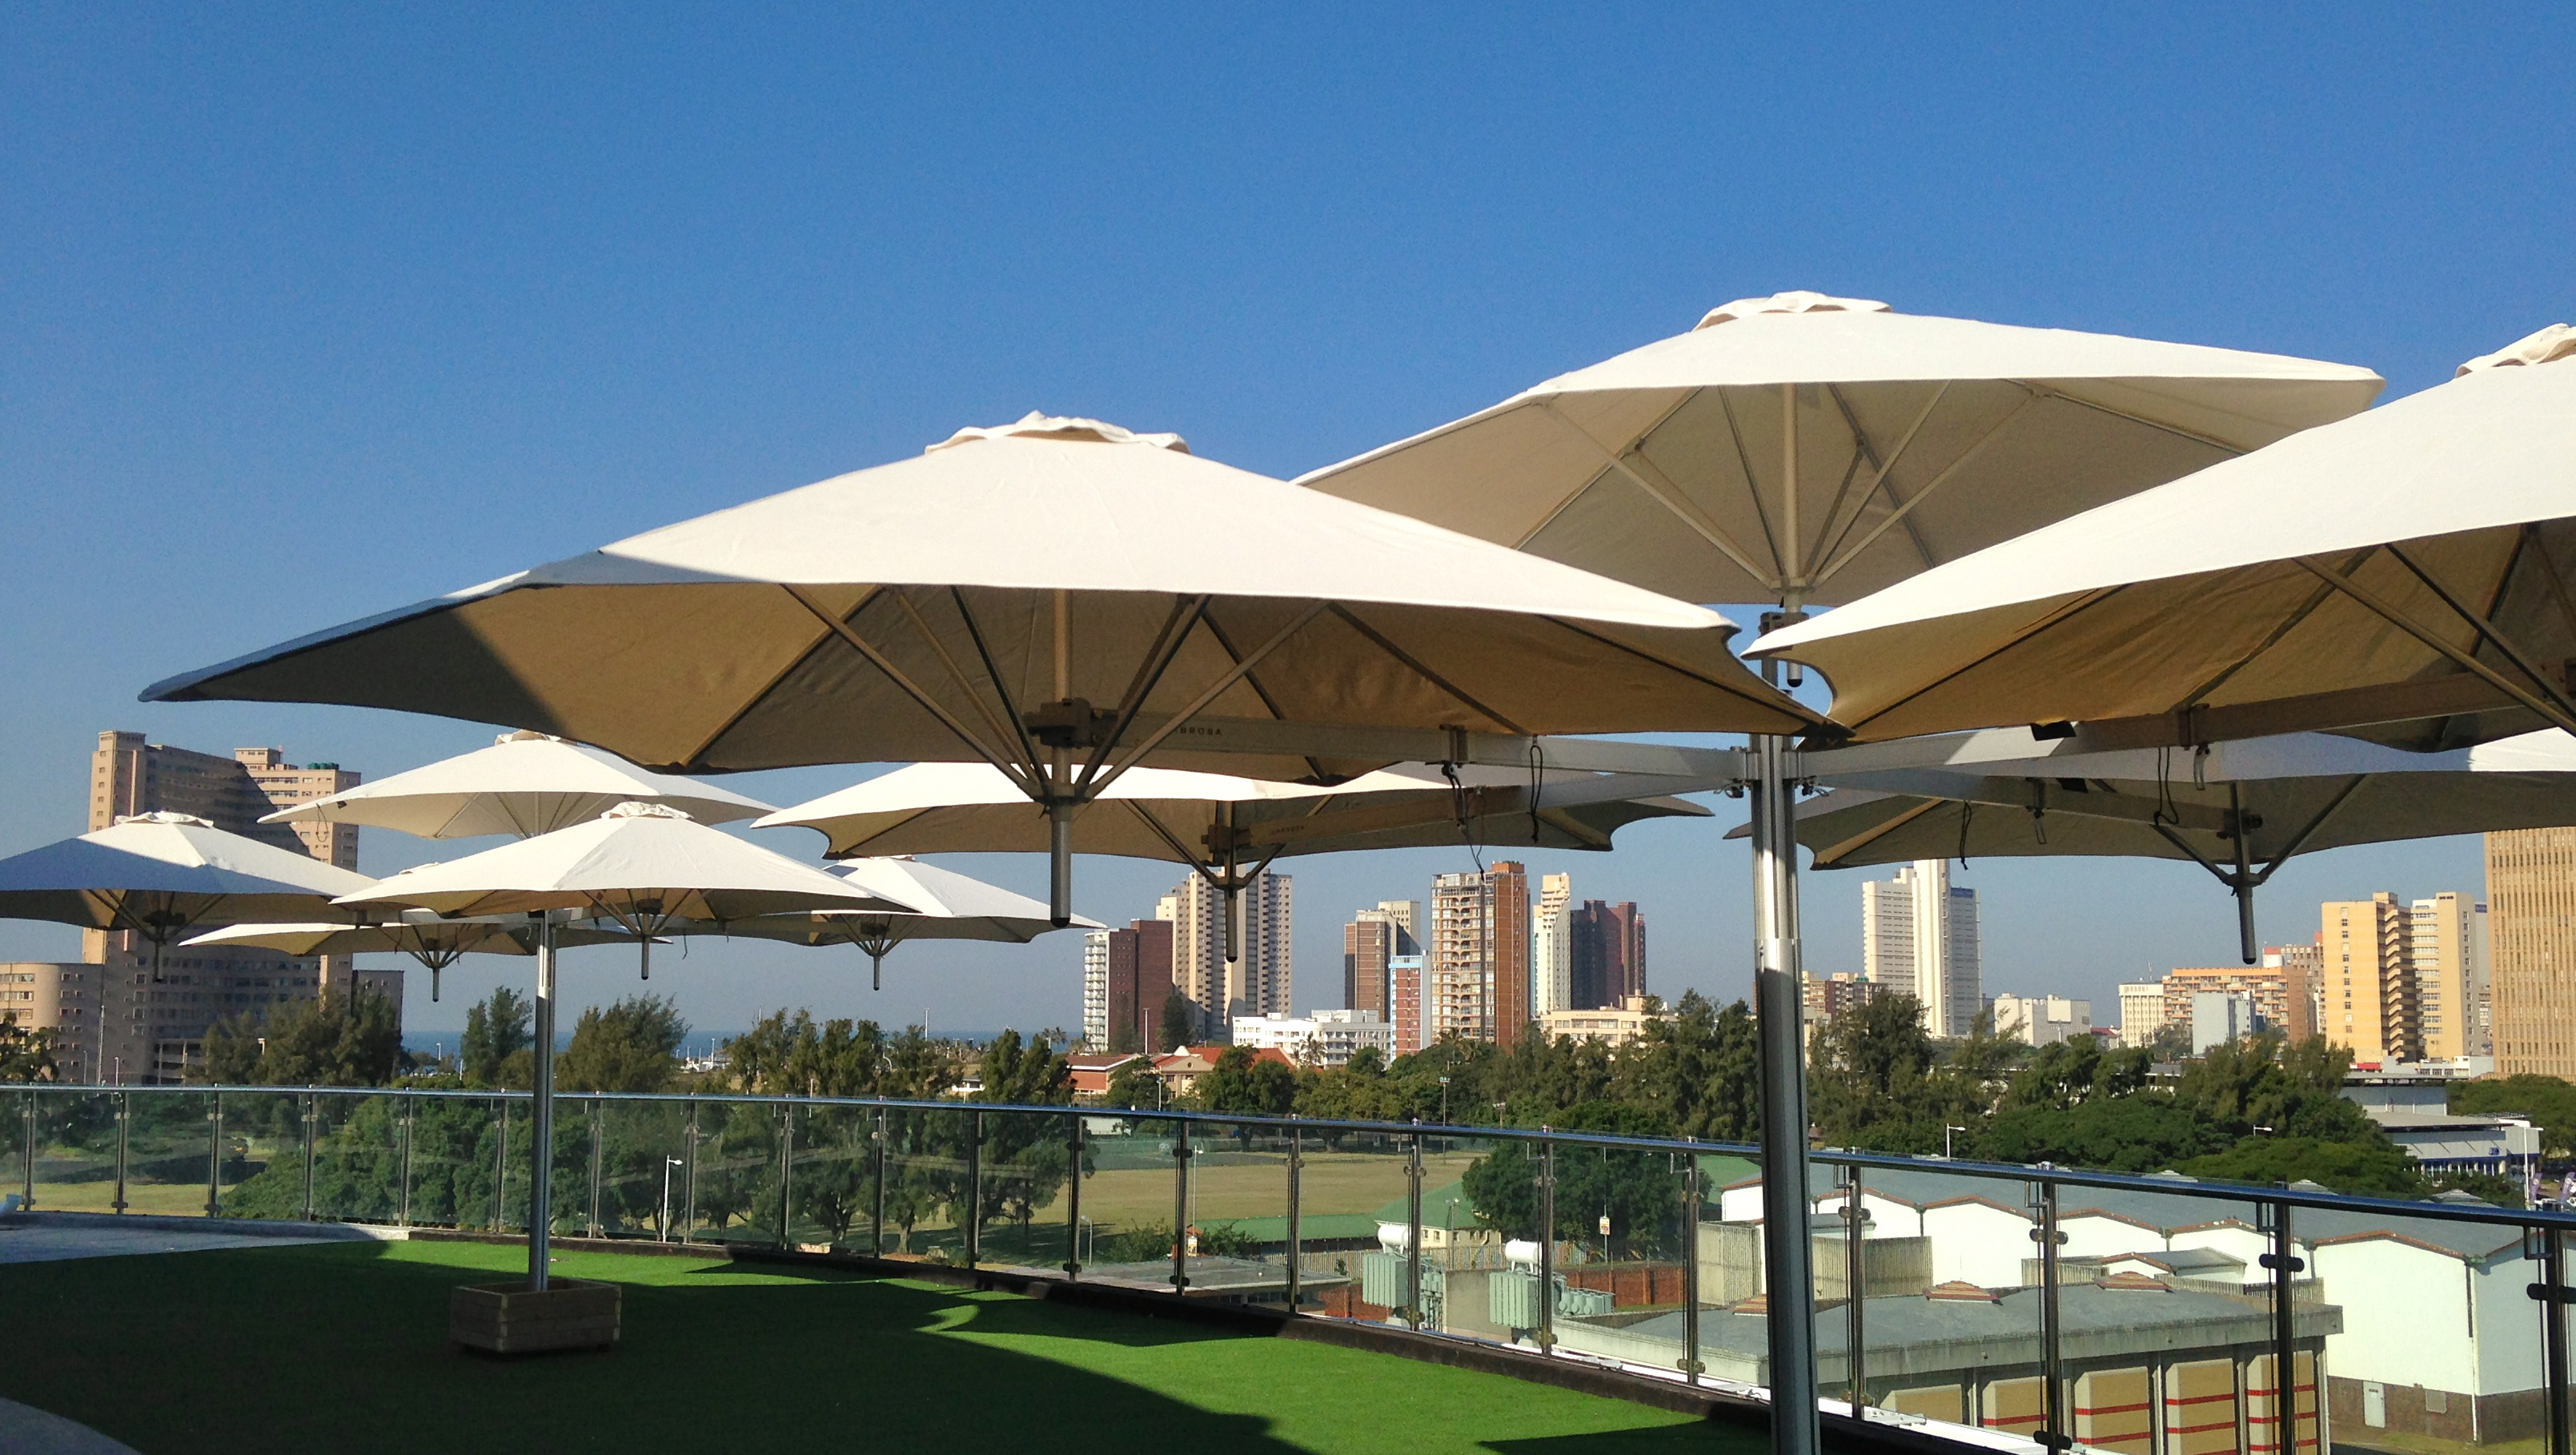 Parasols and Larage Umbrellas - Samson Awnings